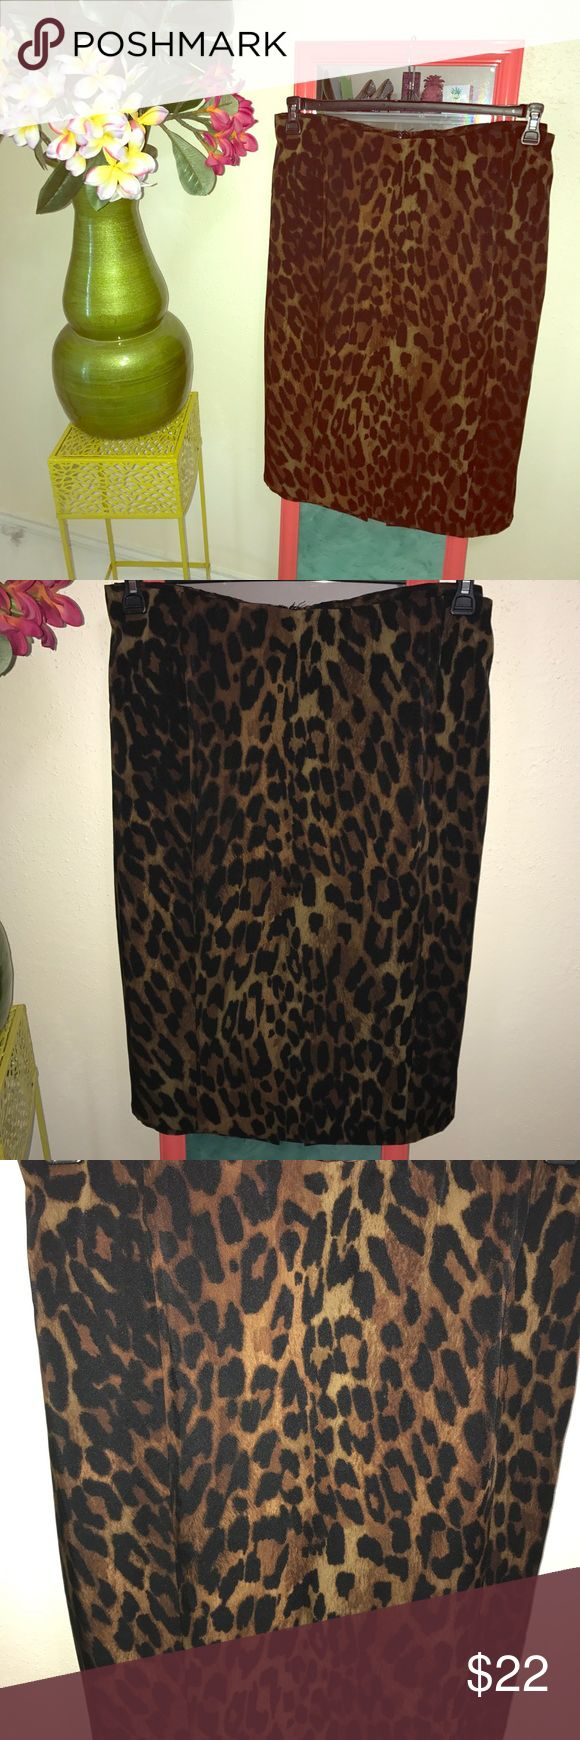 Leopard pencil skit from lane bryant size 26 Great skirt, in n leopard. Perfect for fall size24 in like new cond. Lane Bryant Skirts Pencil